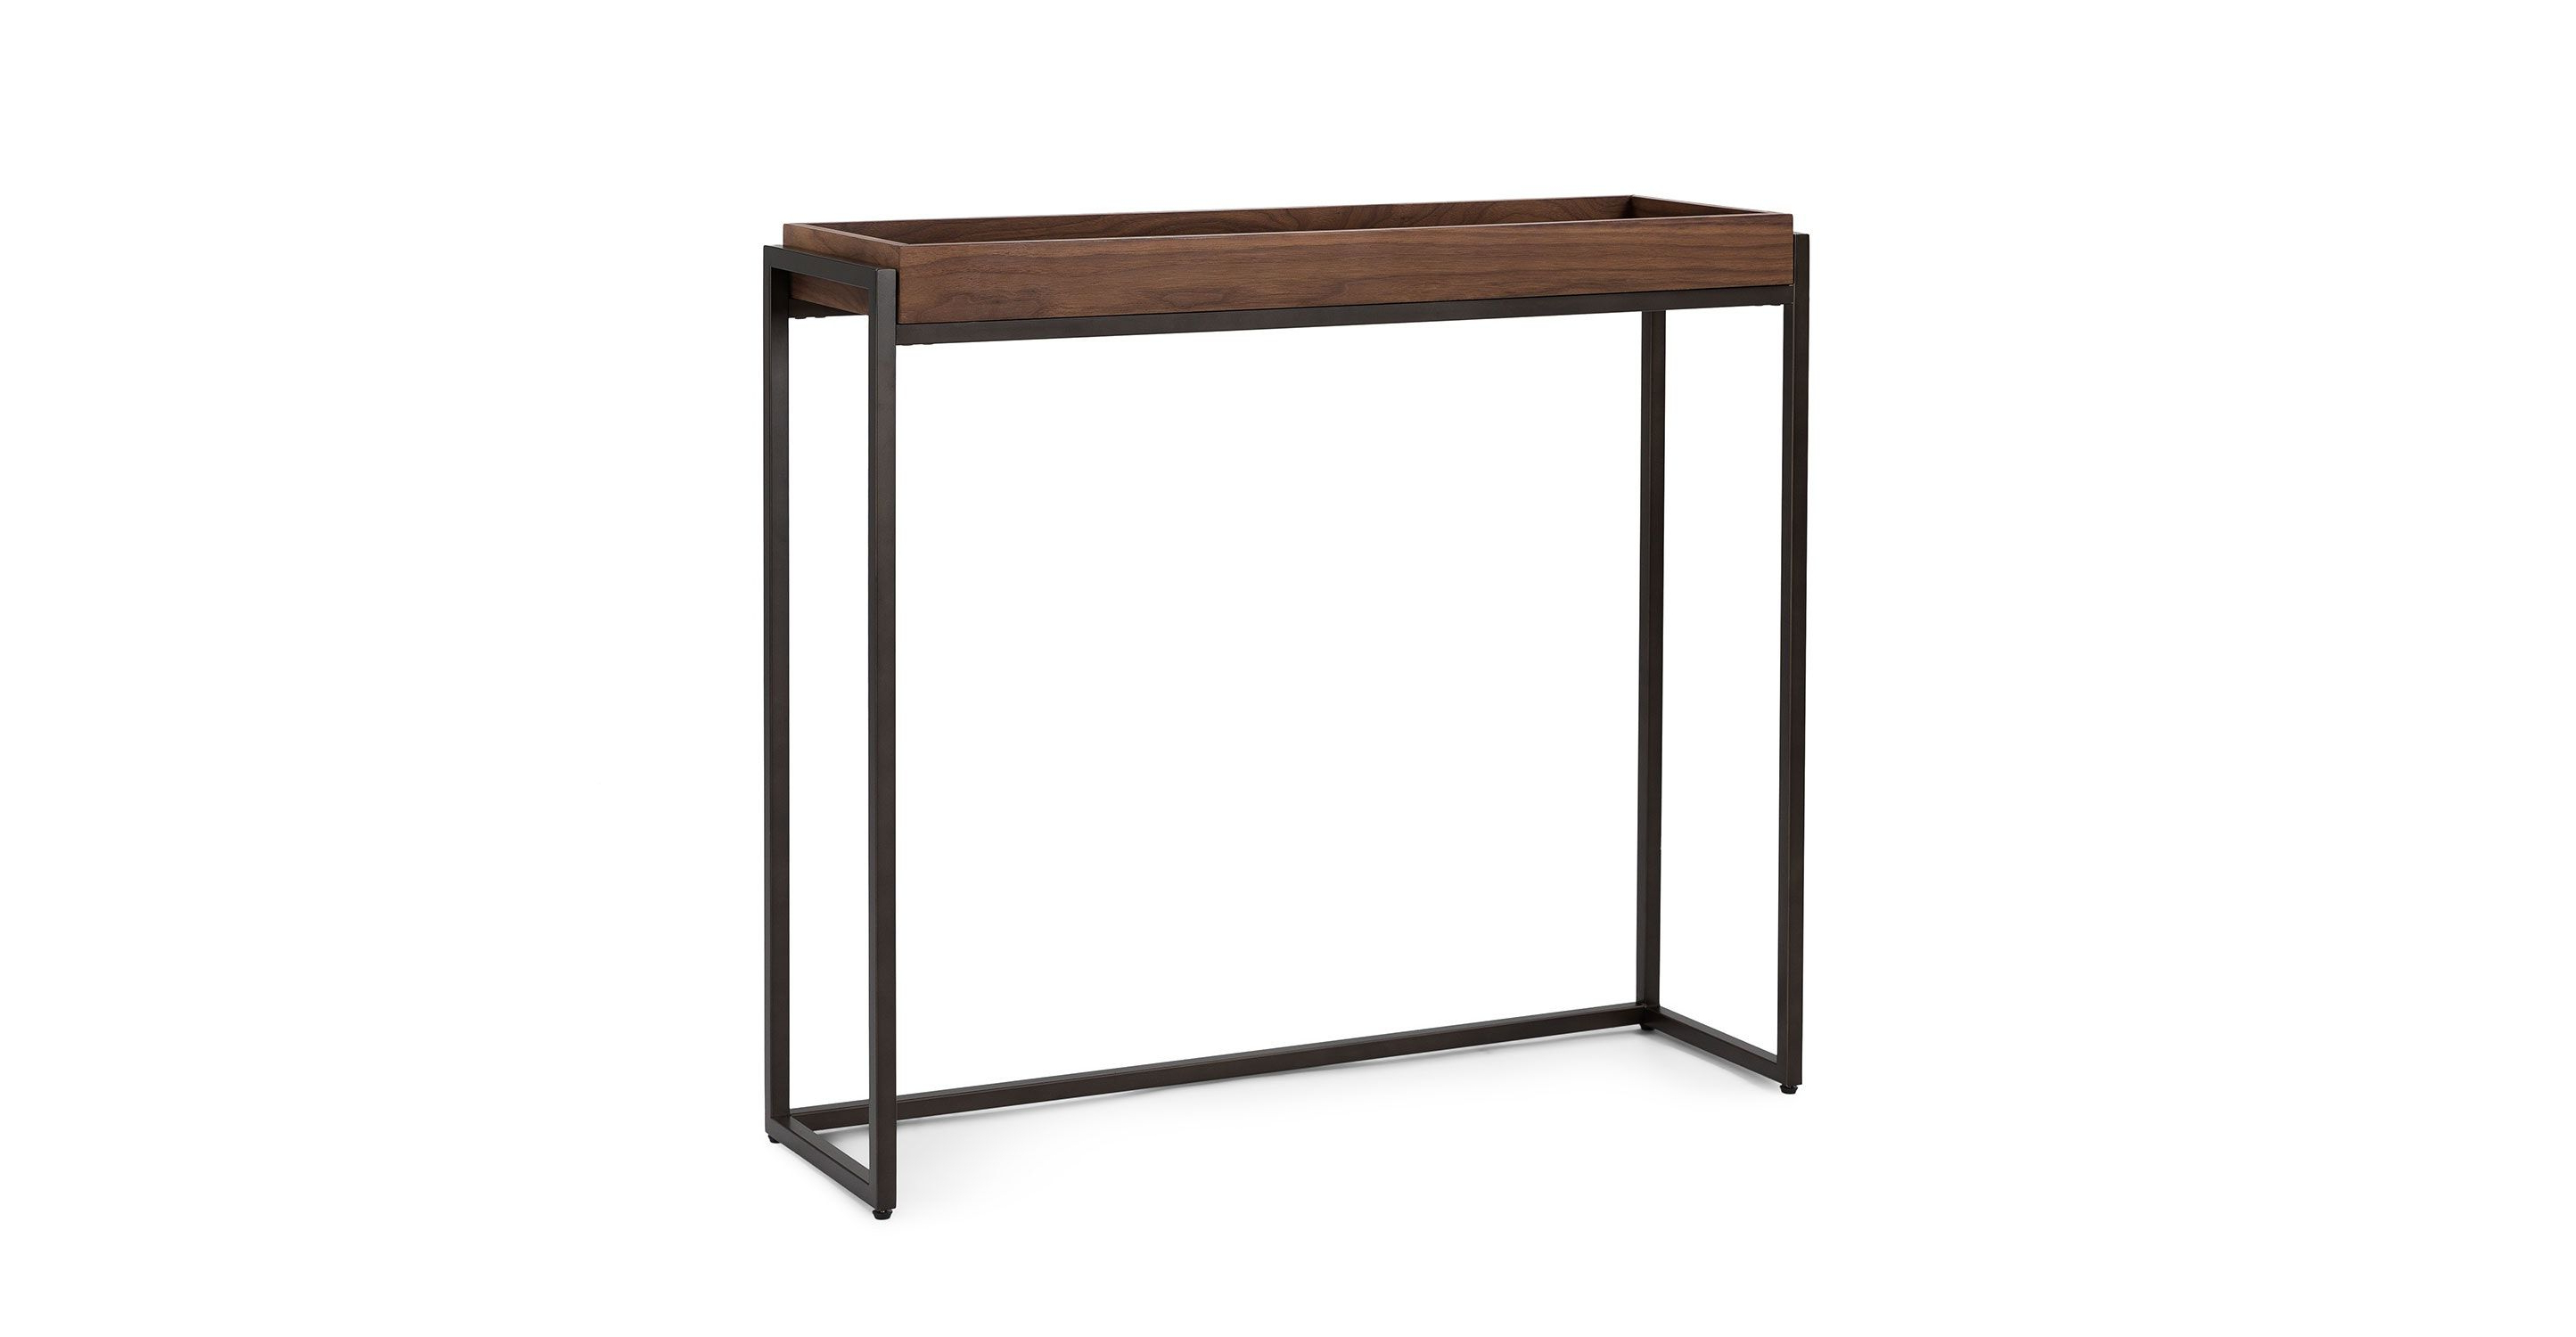 Oscuro Walnut Console Regarding Parsons Clear Glass Top & Brass Base 48x16 Console Tables (View 16 of 20)